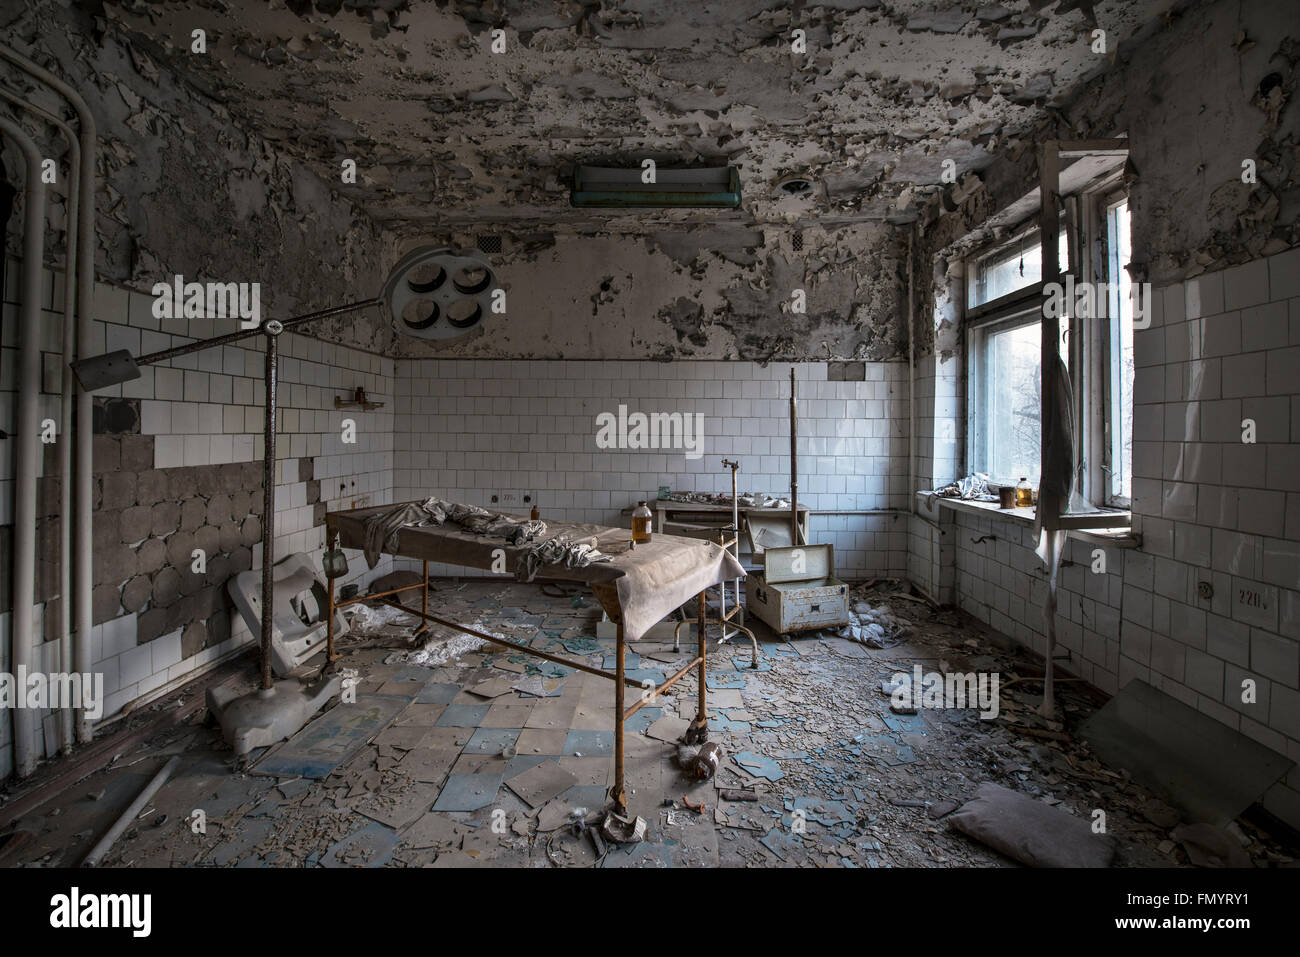 Hospital operating room and table in Pripyat, Chernobyl scene of 1986 nuclear disaster - Stock Image